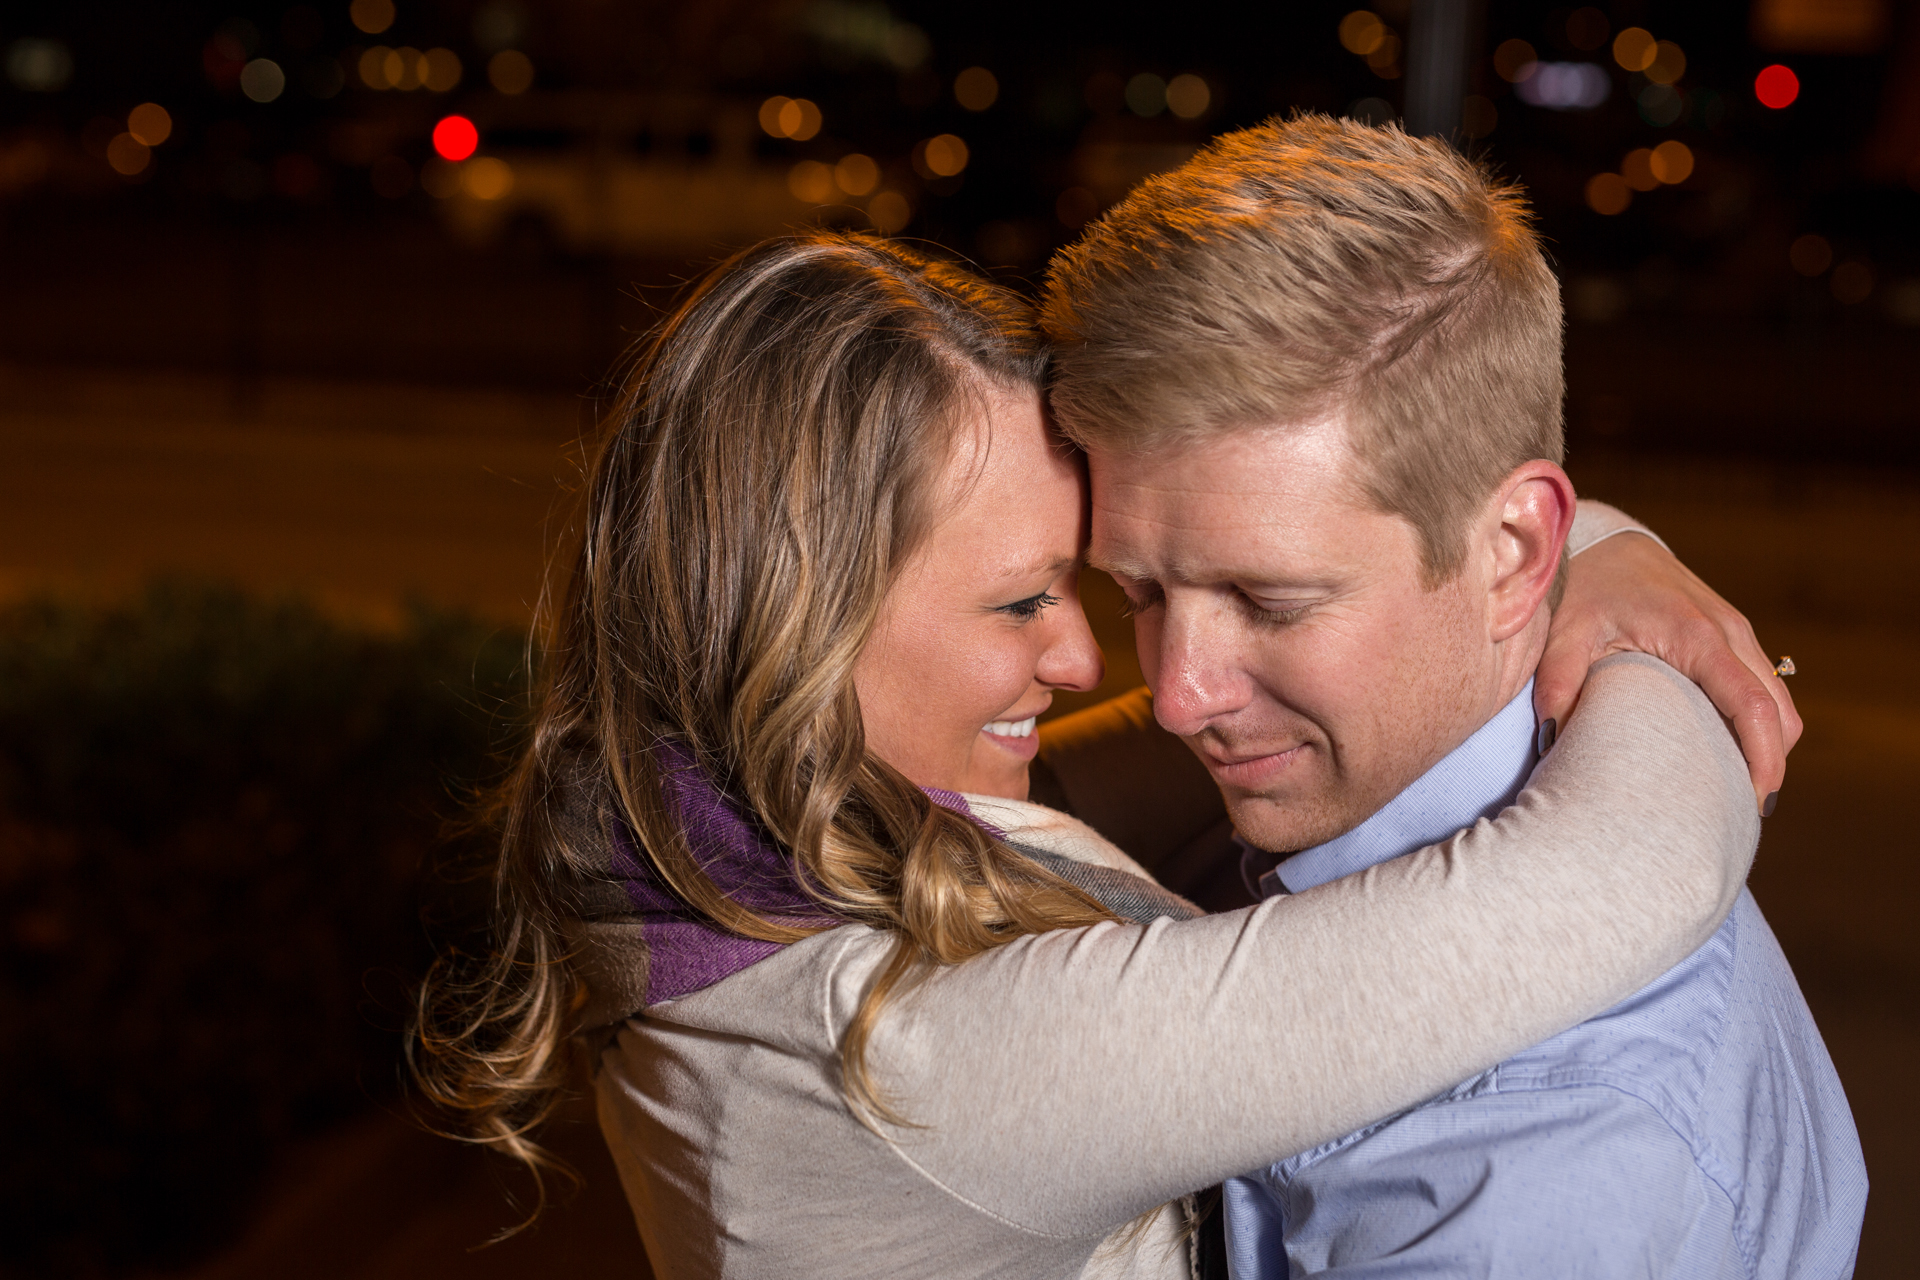 peoria illinois bloomington normal engagement pictures peoria riverfront wedding photographer-25.jpg